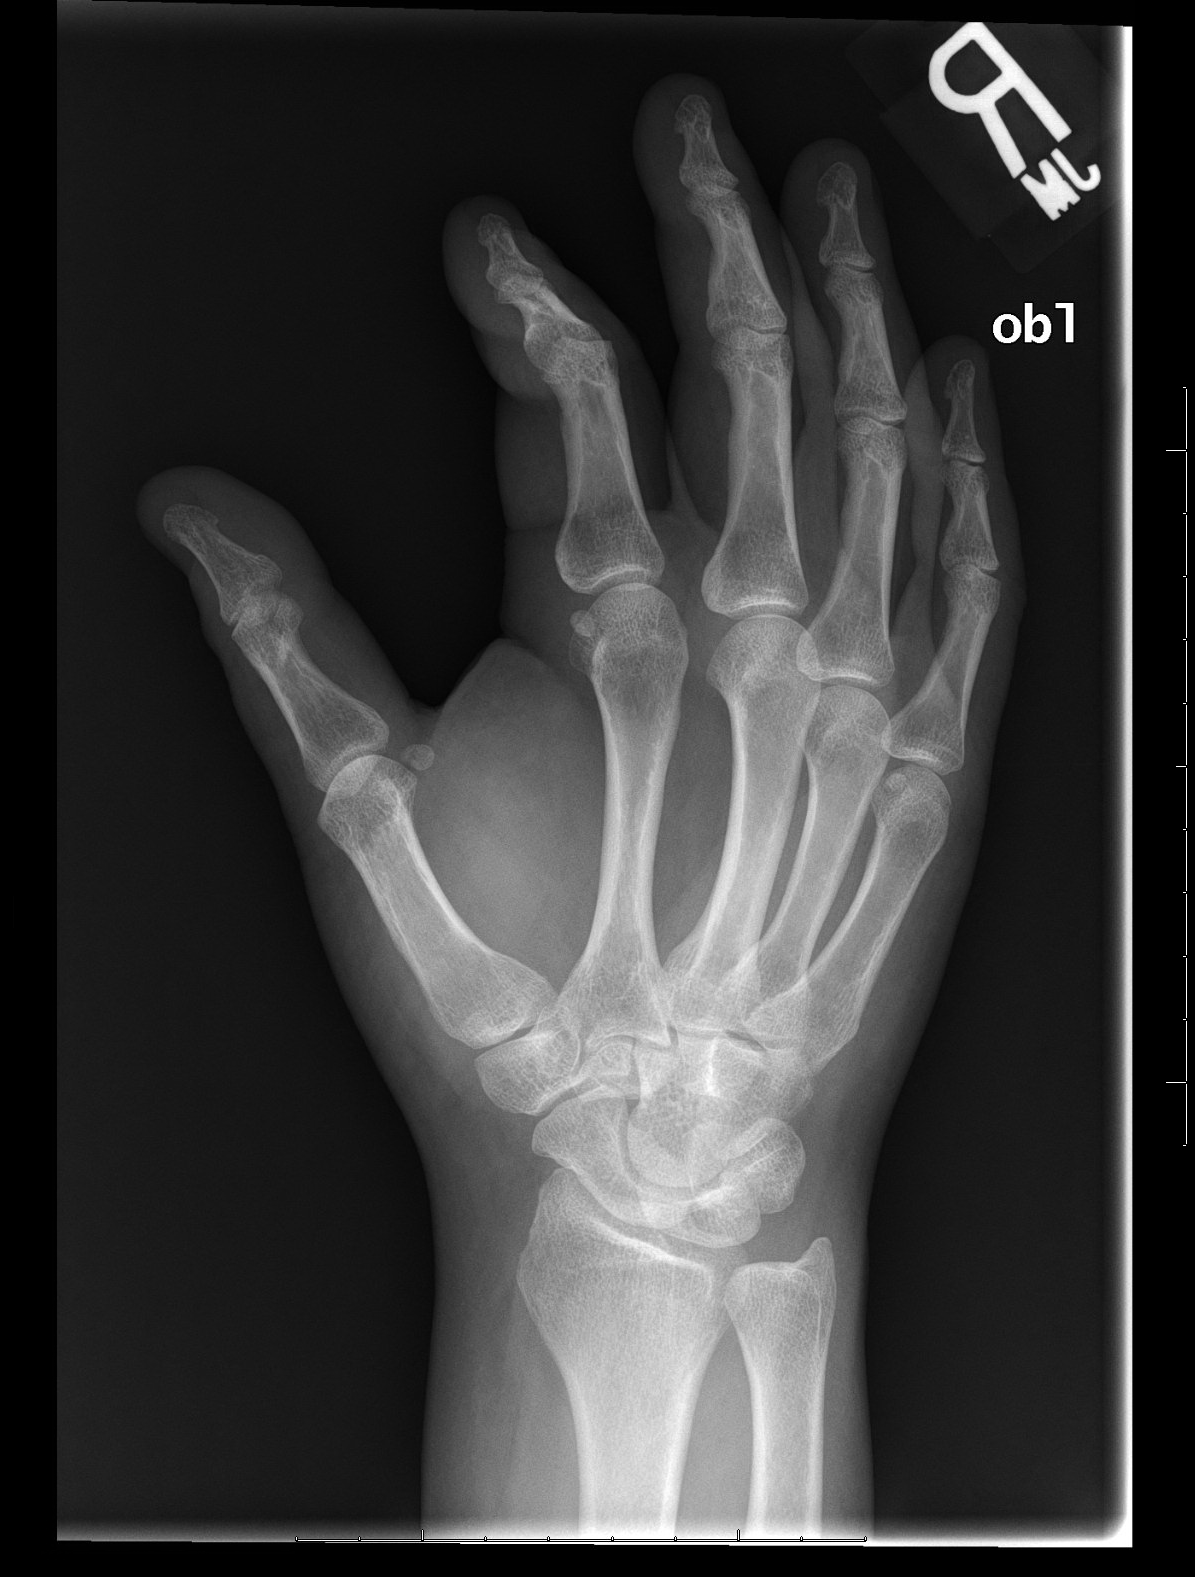 Archive Of Unremarkable Radiological Studies: Right Hand X-Ray ...